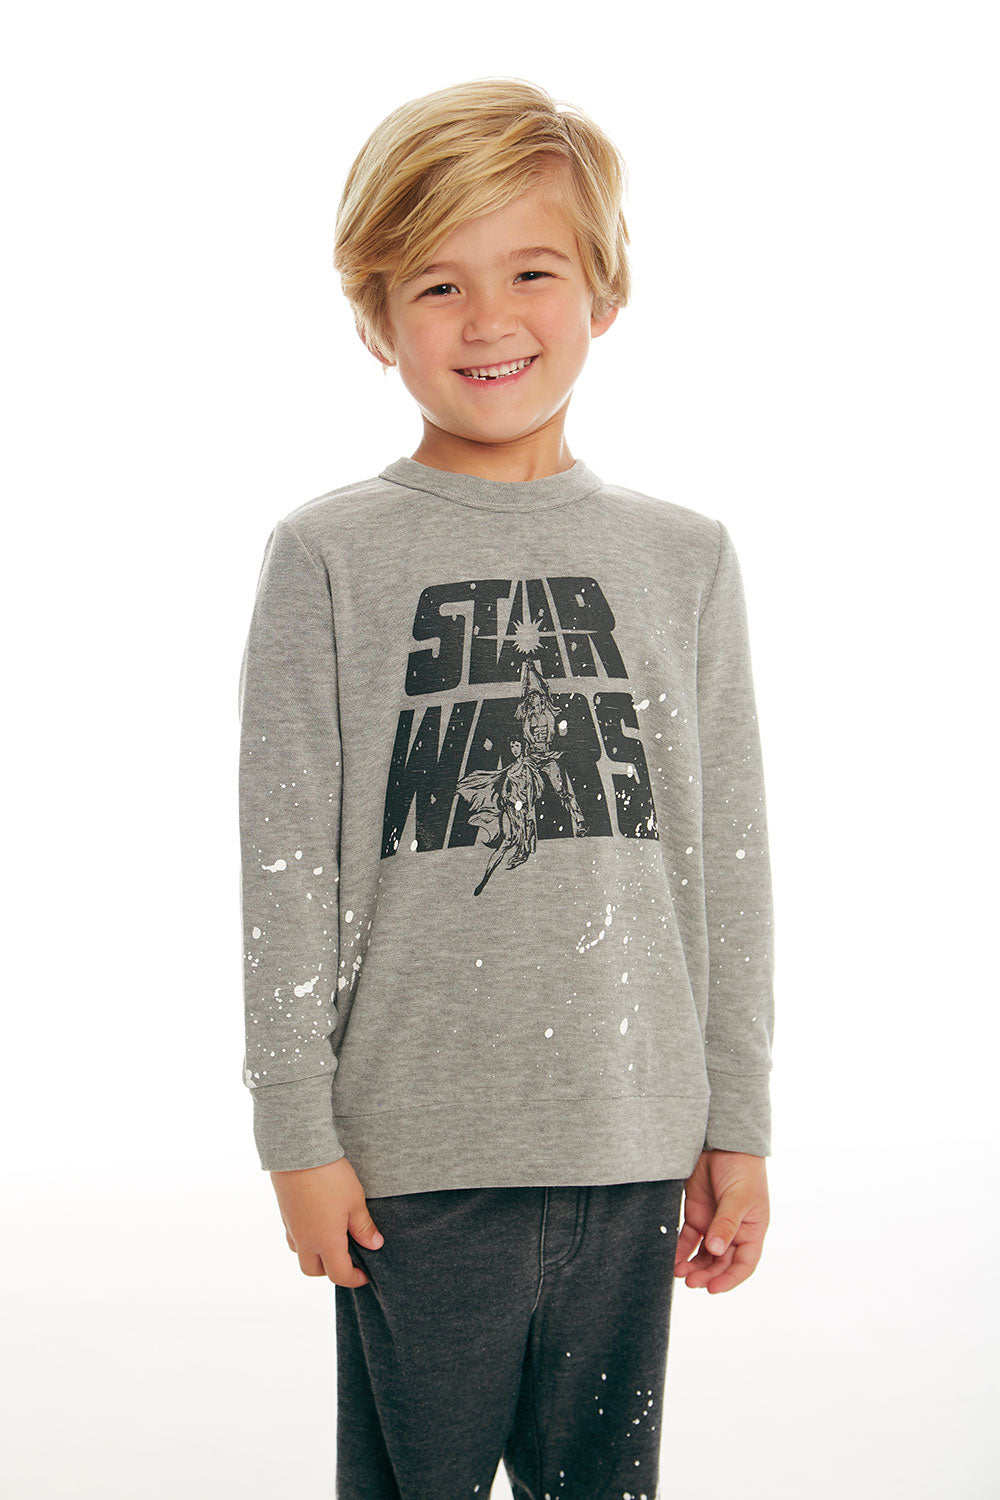 Star Wars - Star Wars Luke & Leia, BOYS, chaserbrand.com,chaser clothing,chaser apparel,chaser los angeles